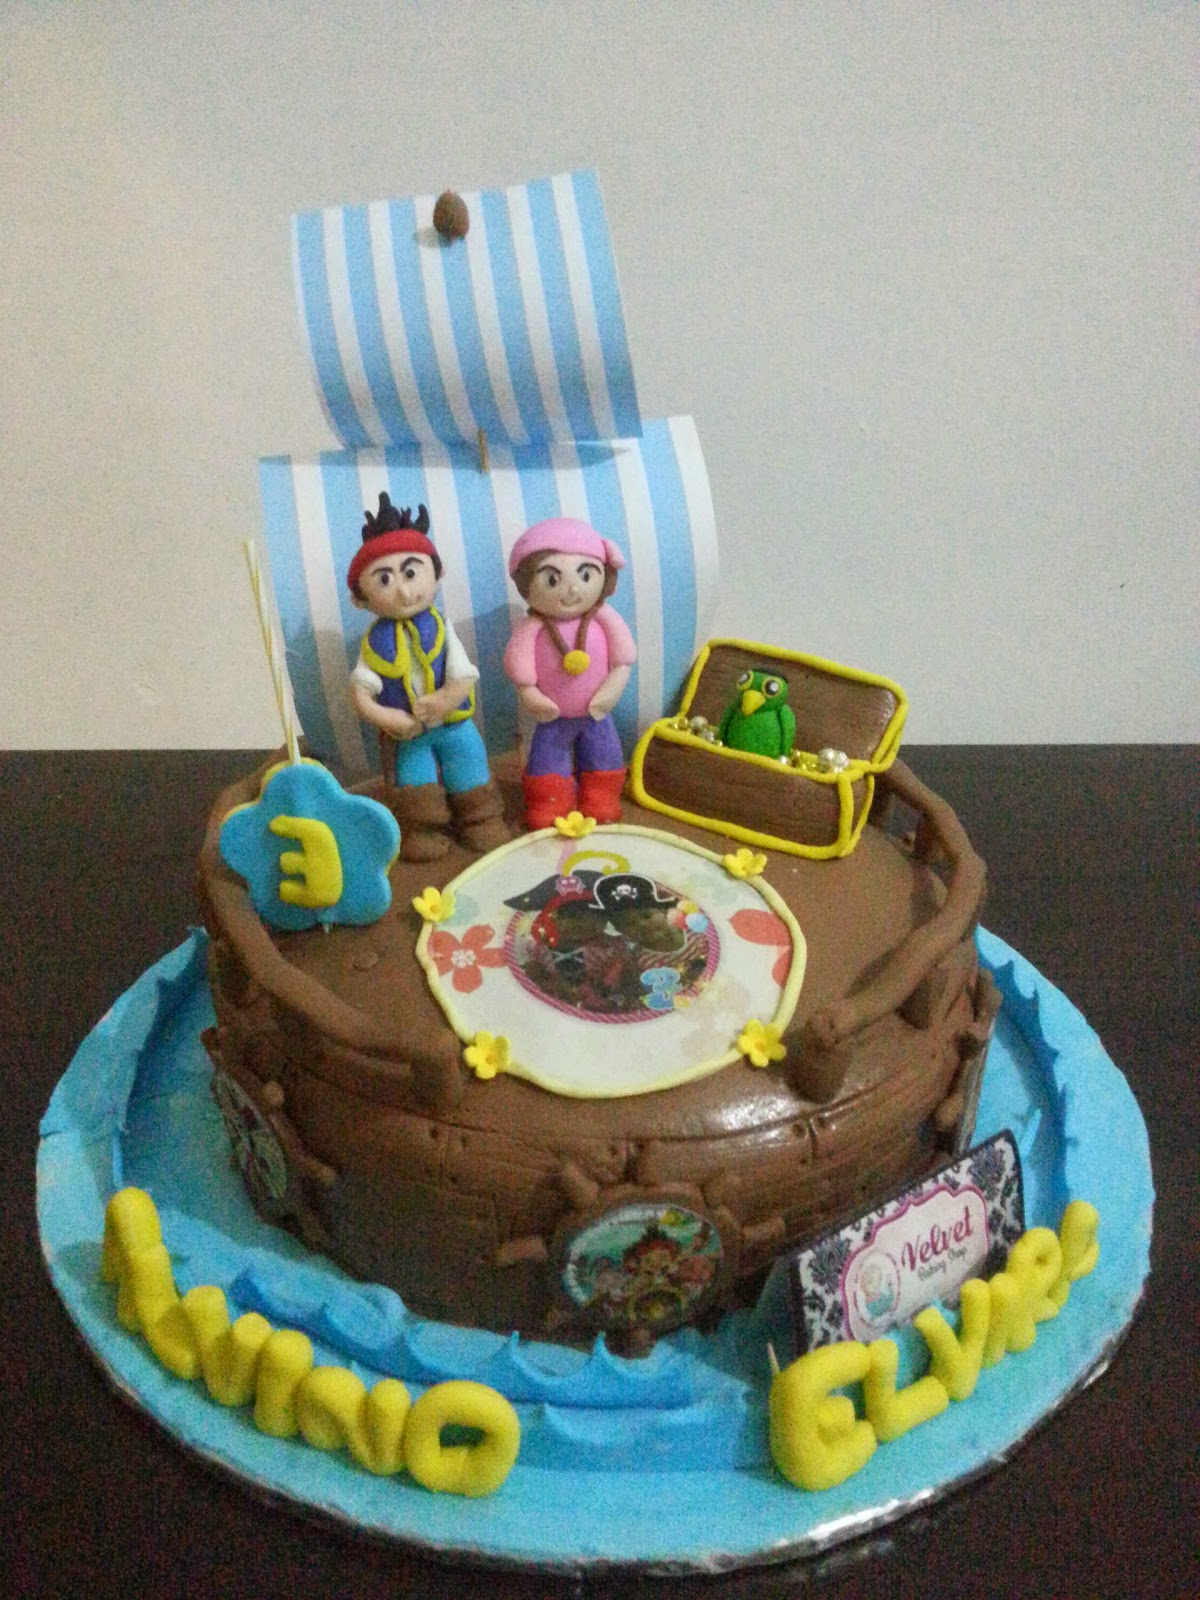 Birthday Cake Semarang Image Inspiration of Cake and Birthday